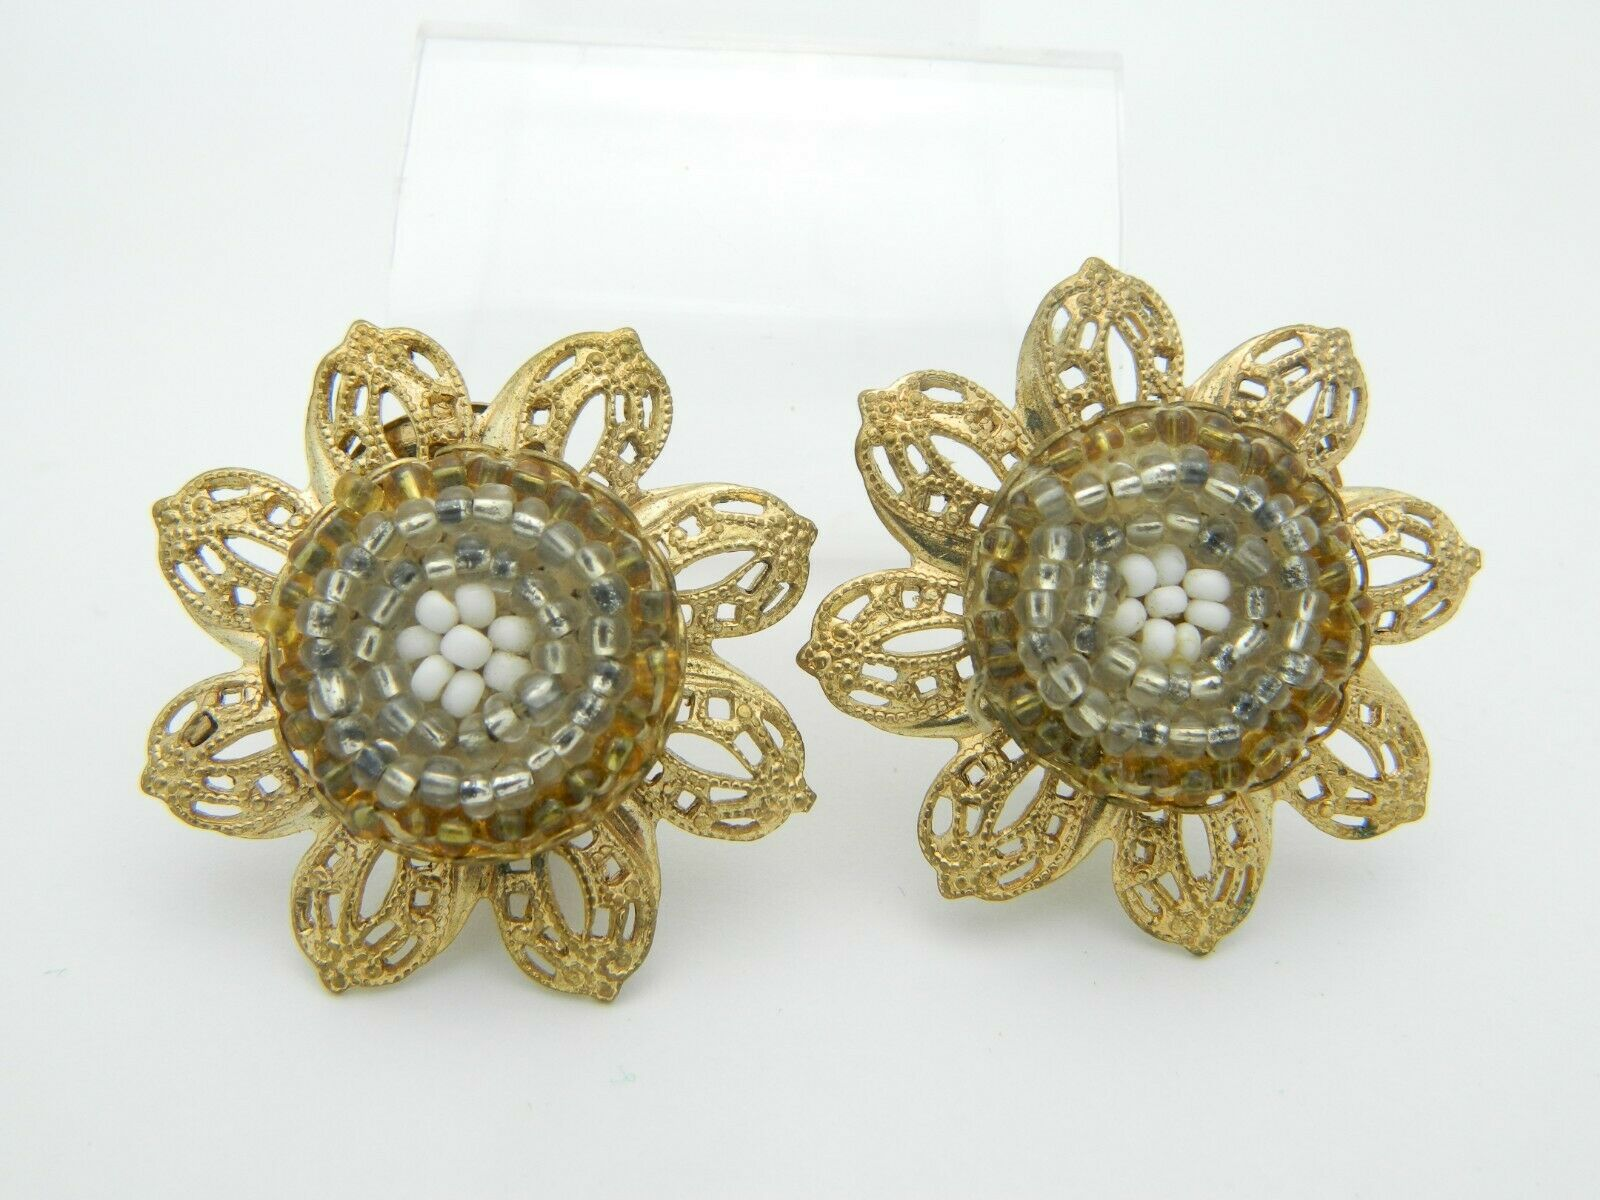 Primary image for White Silver Gold Seed Bead Ornate Open Work Gold Tone Flower Clip Earrings